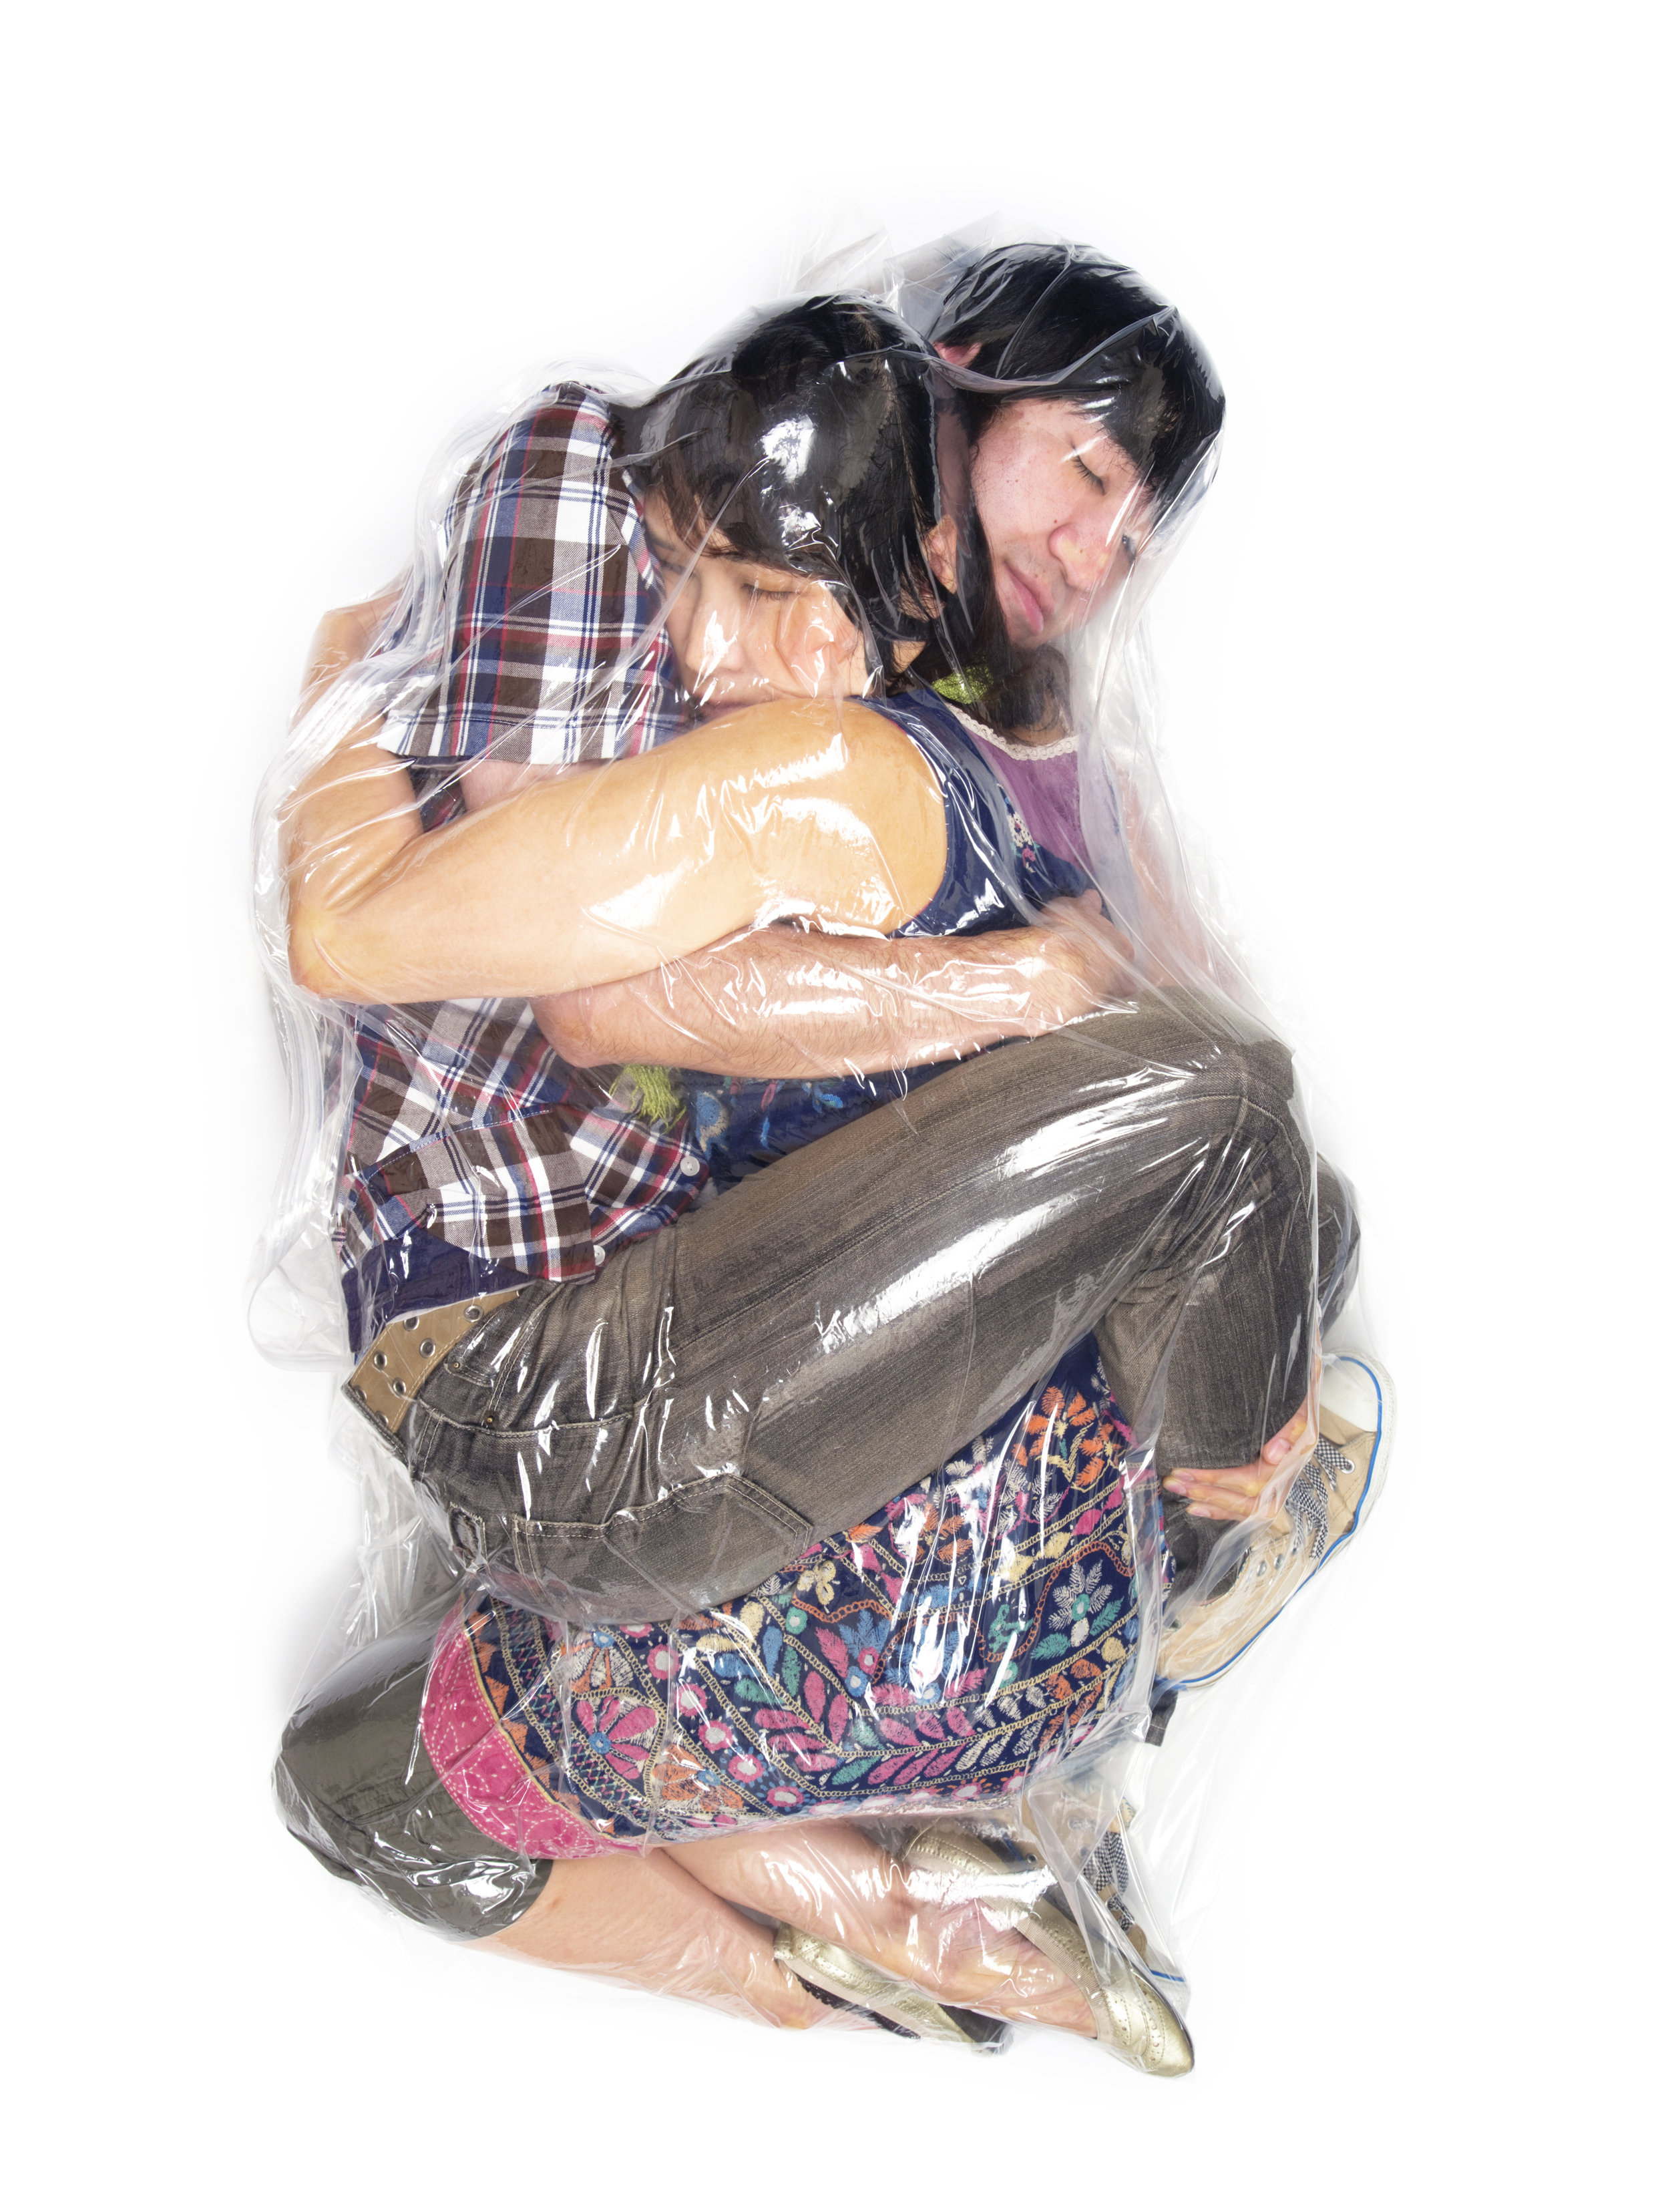 Shrink wrap couple